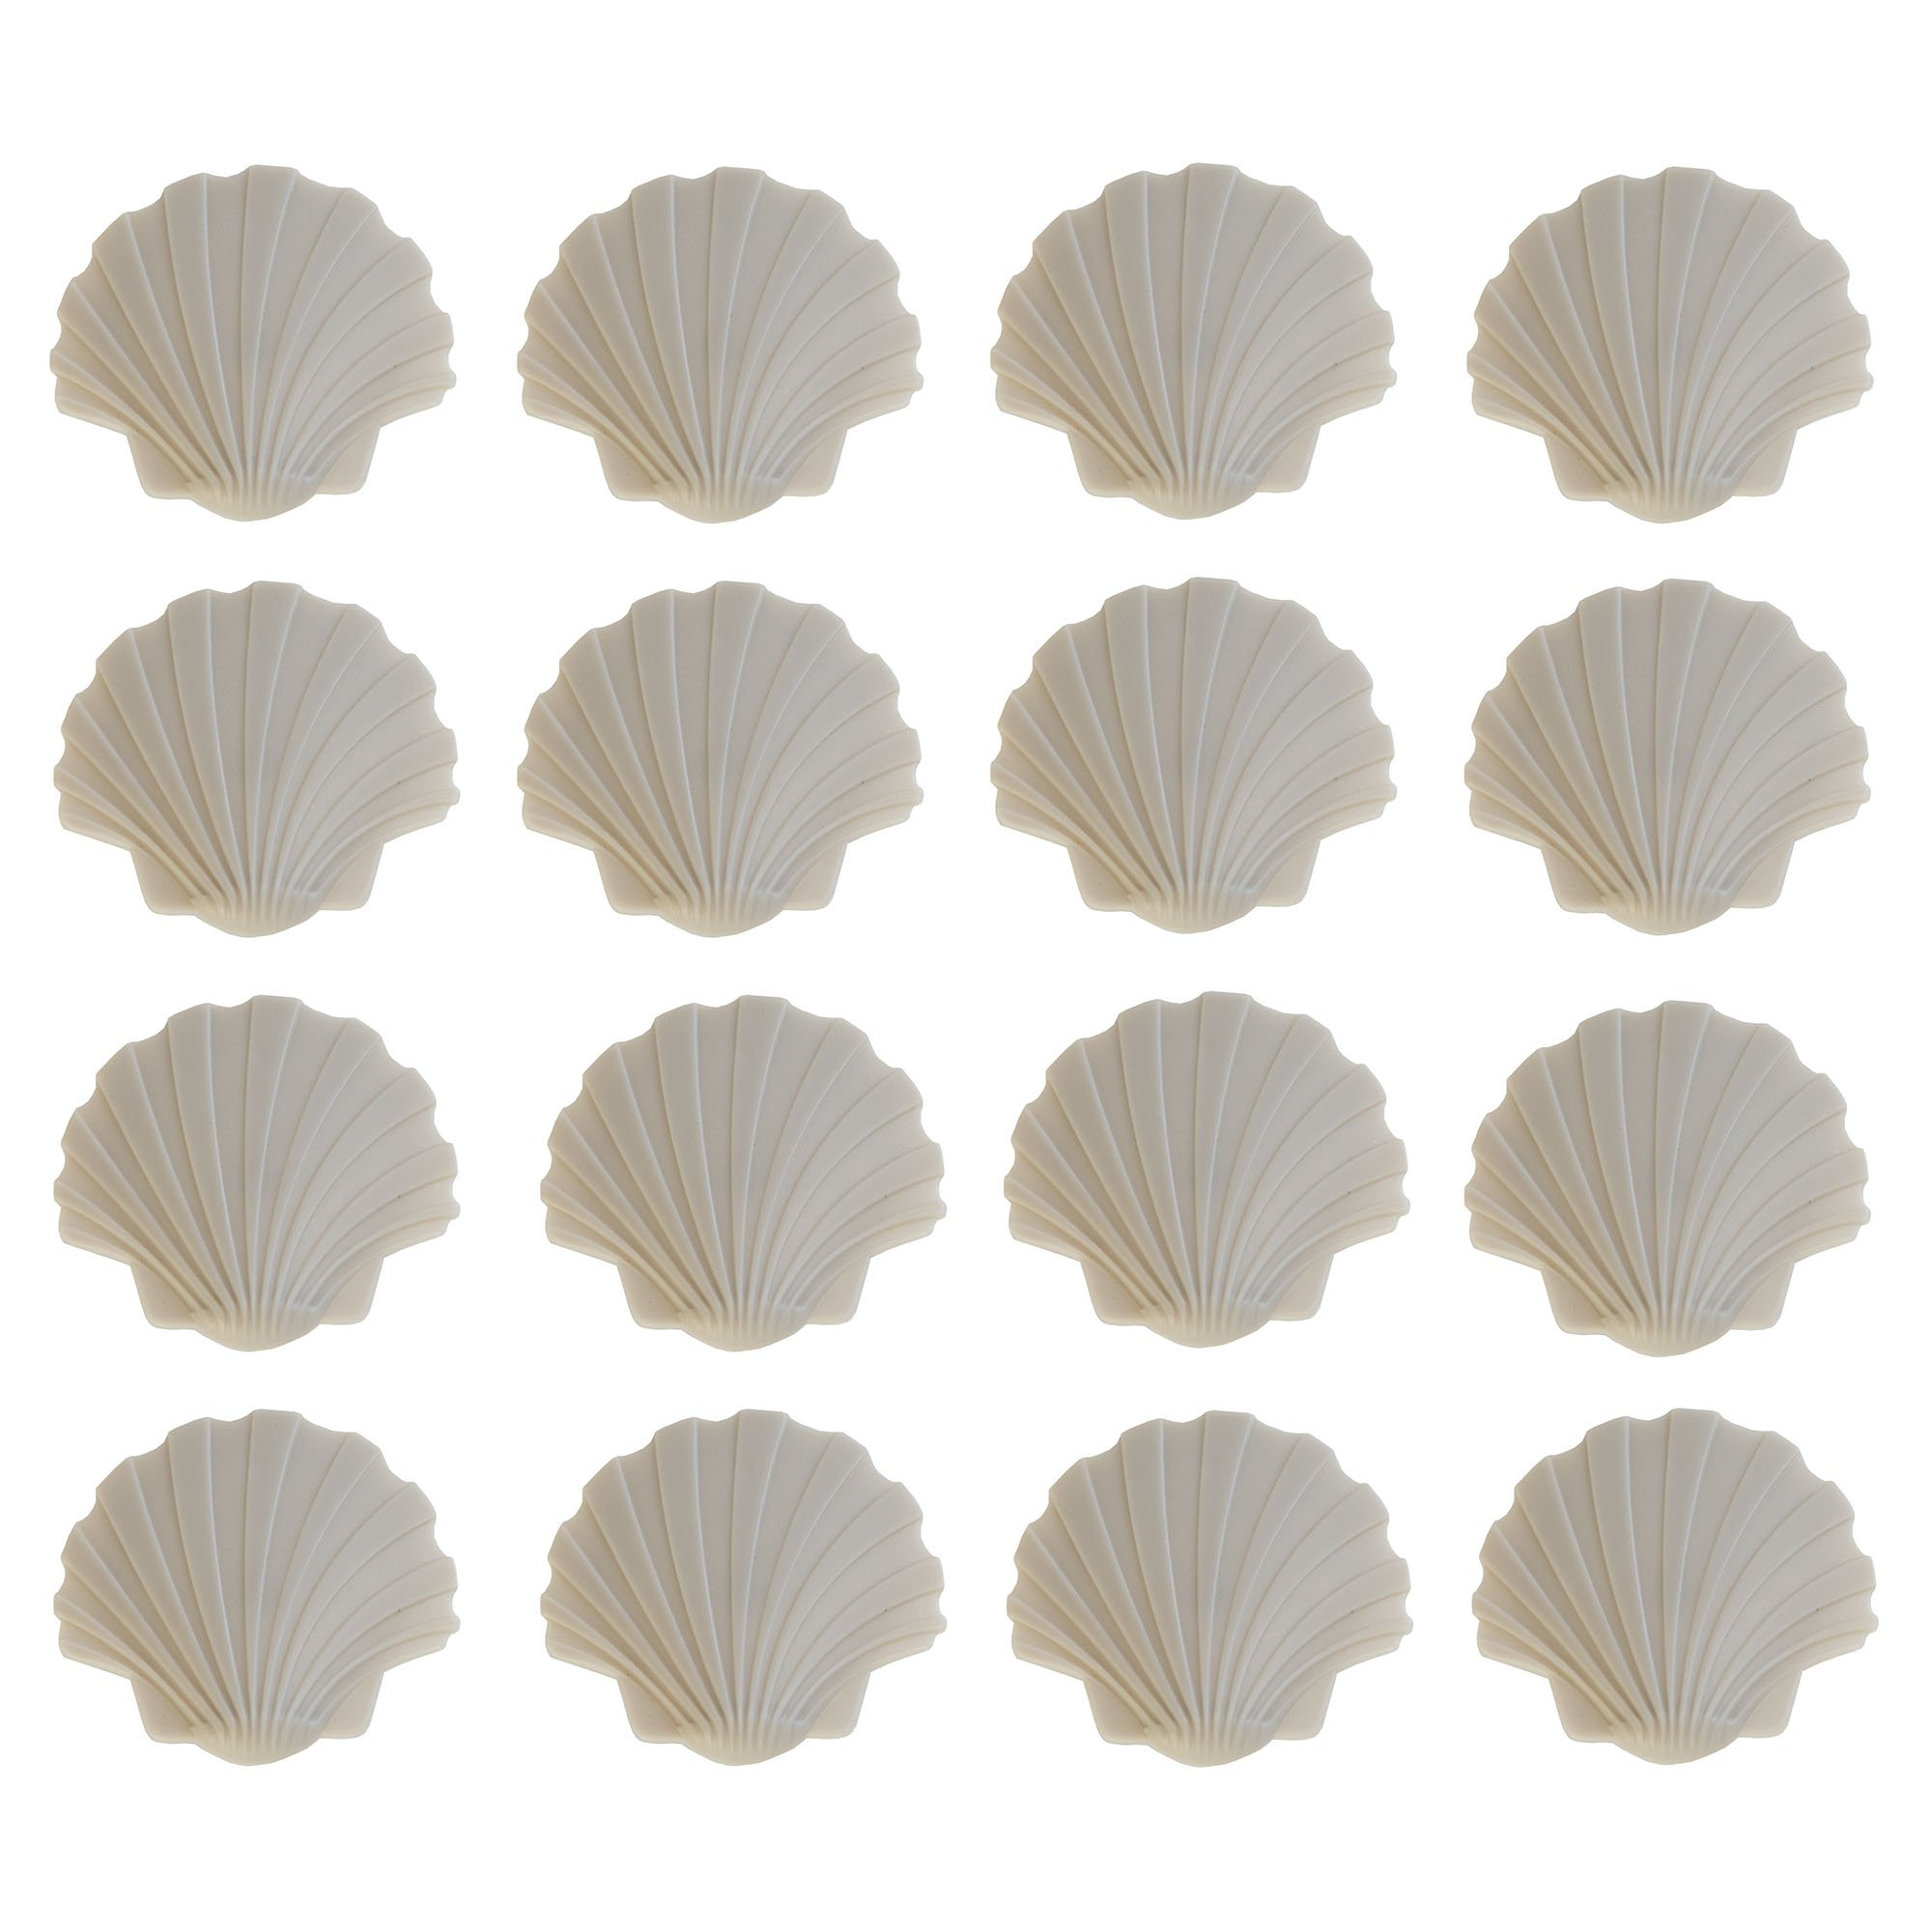 Hinspergers Yard Guard Pool Safety Cover Brass Plug Seashell Deck Creations (12 Pack)